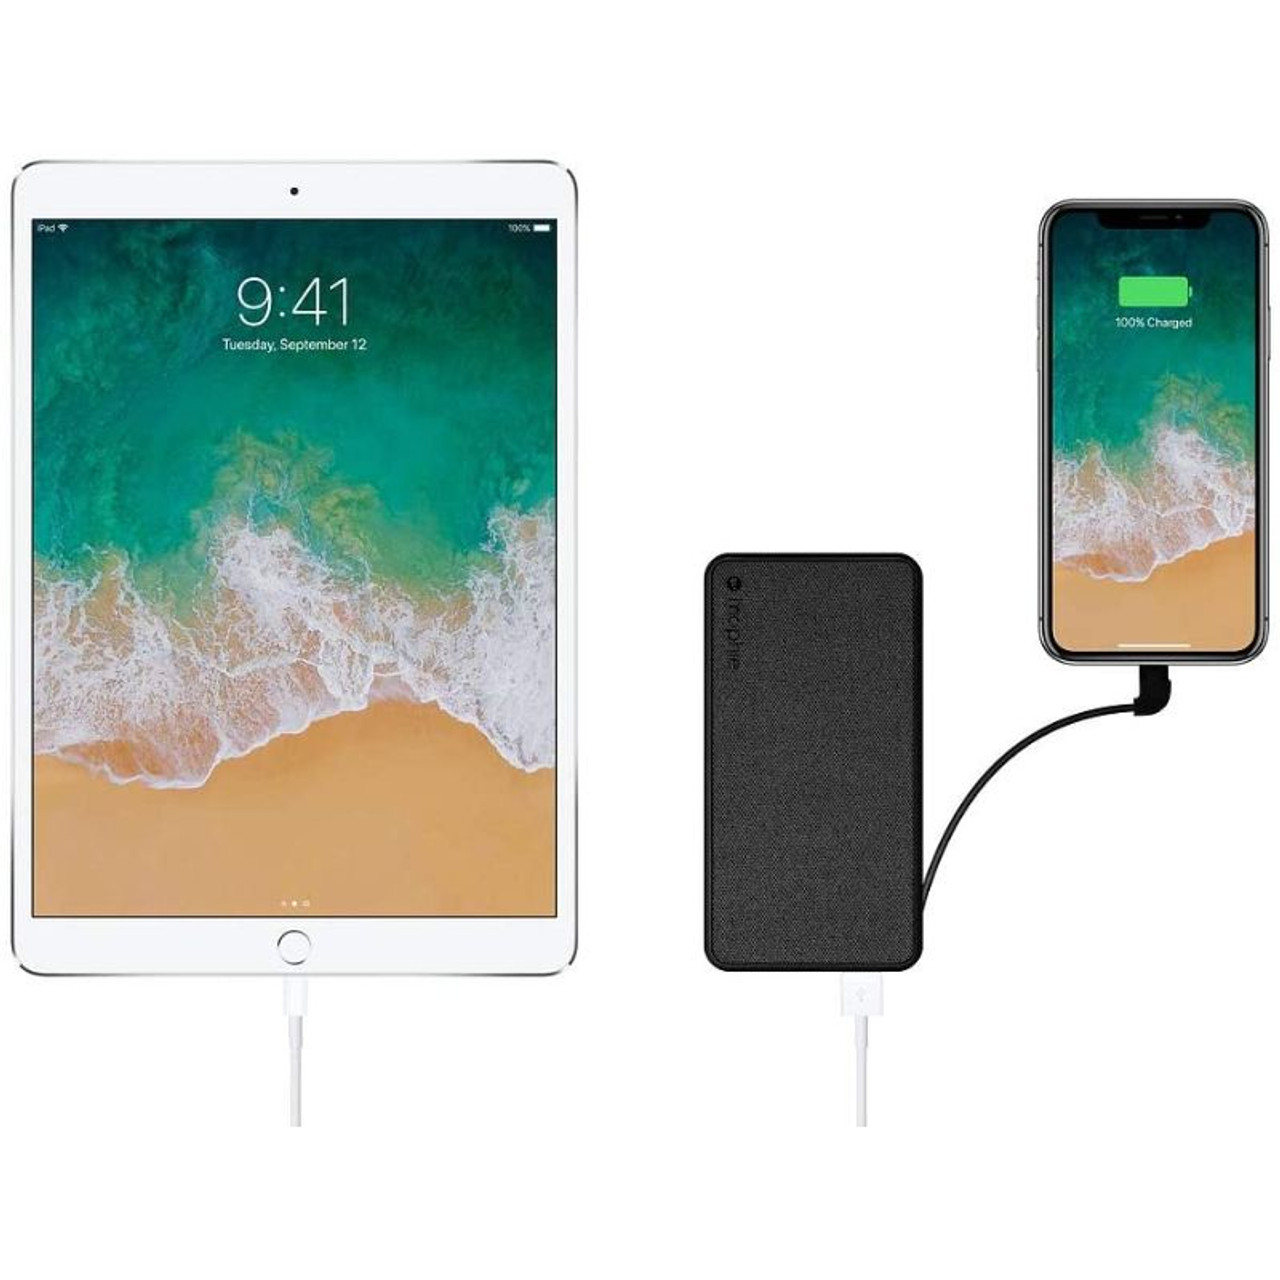 Mophie Powerstation 6,040mAh Portable Charger